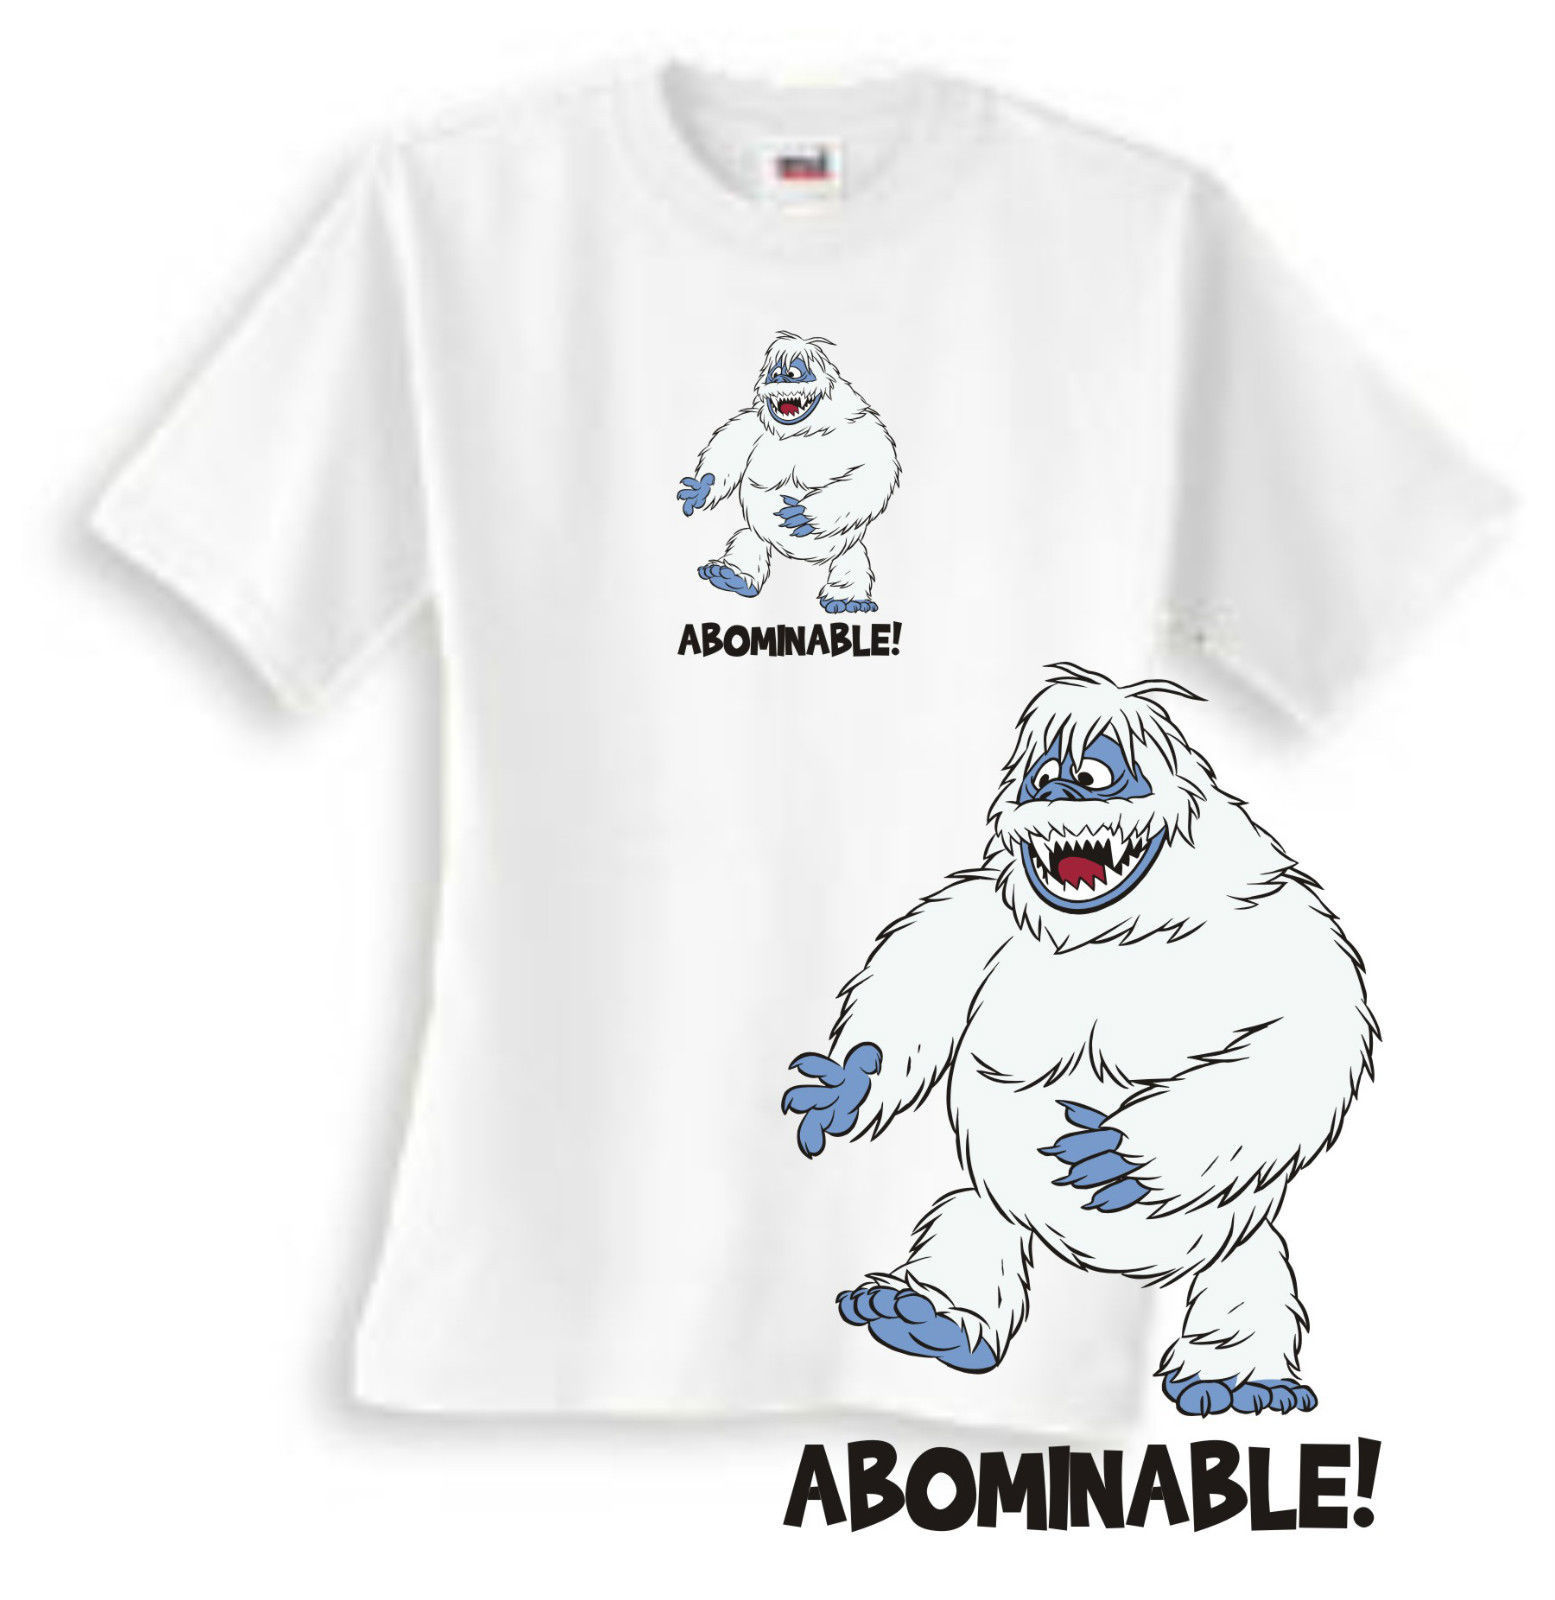 Abominable Snowman T-shirt retro Christmas TV misfit toys 80's cotton white tee